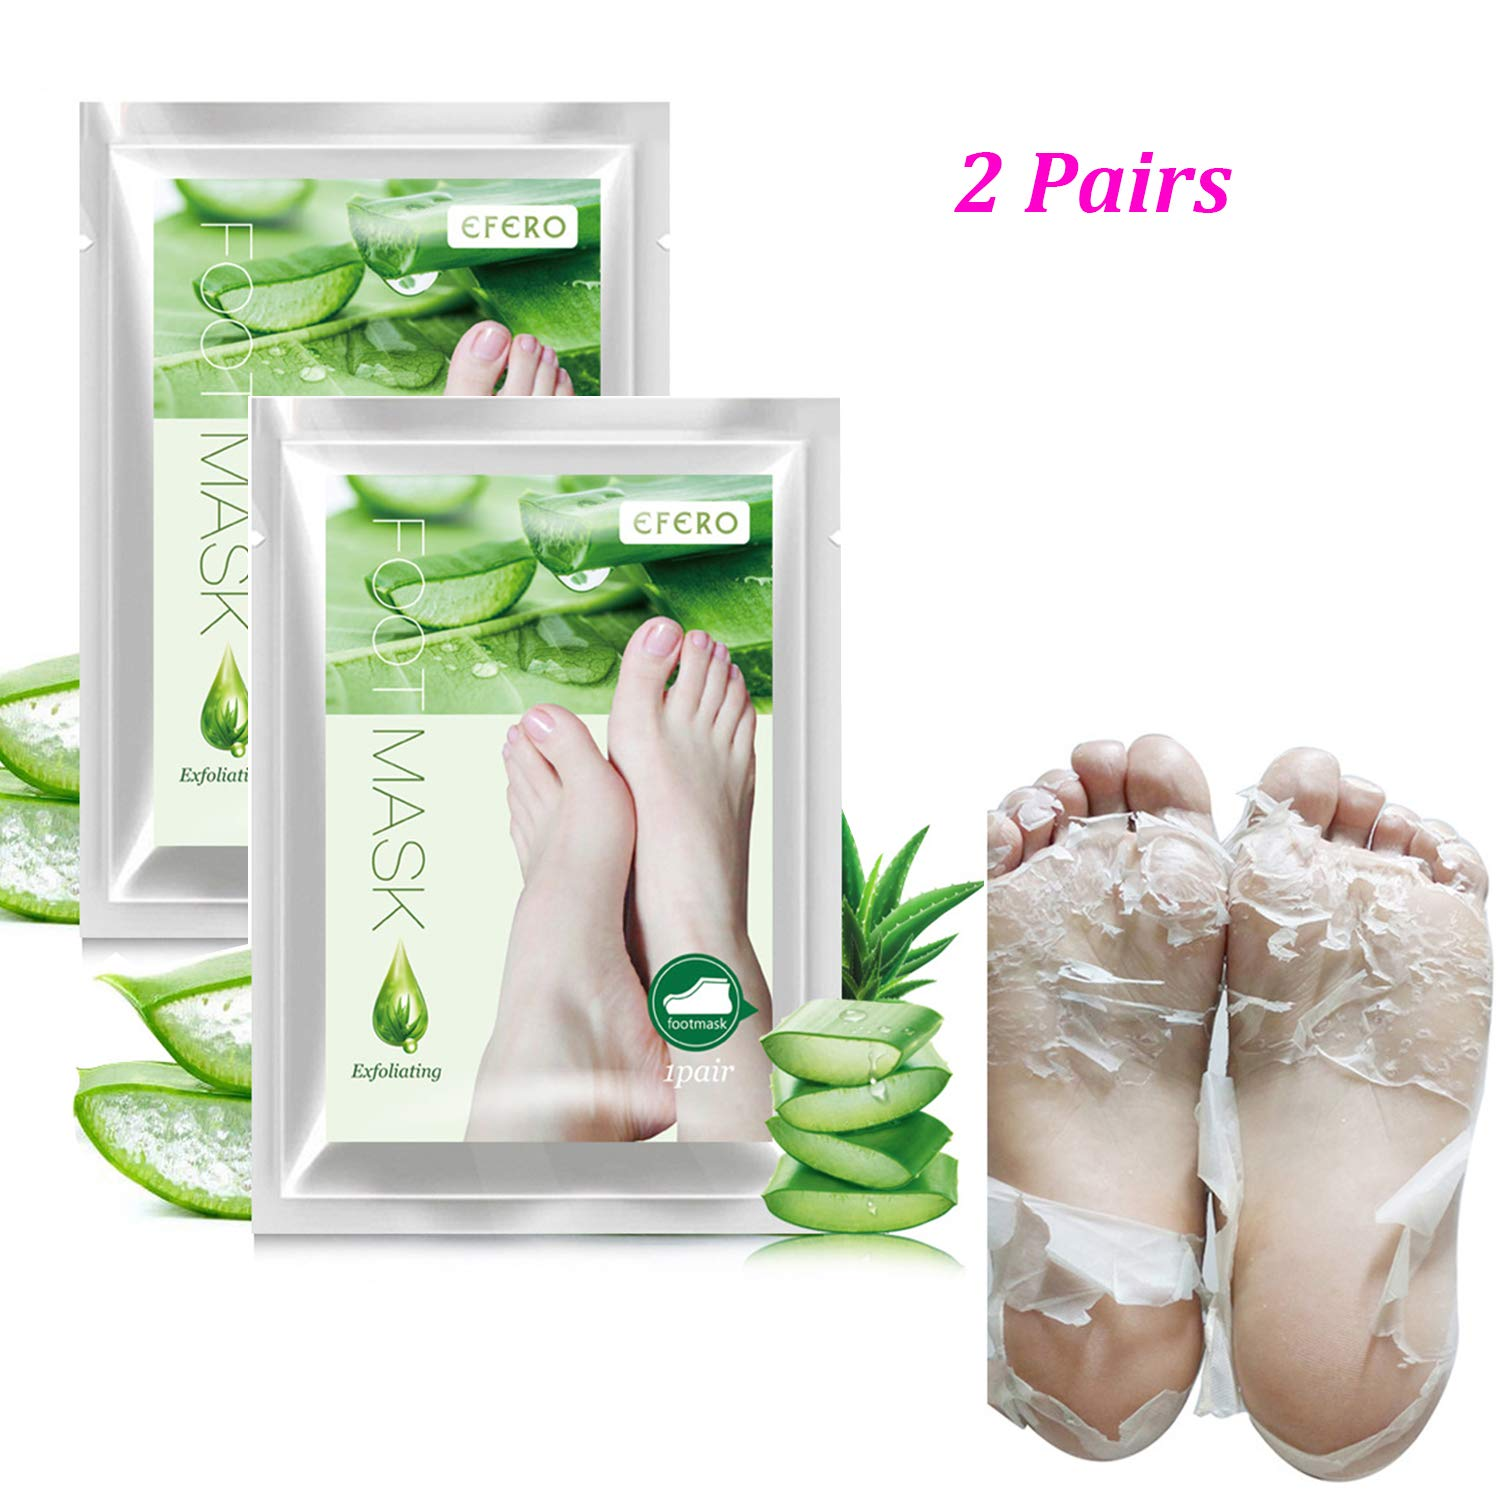 2 Pairs Foot Peel Mask, High Key Aloe Scented Foot Exfoliating Callus Peel Booties, Get Soft Baby Your Foot Naturally in 1 Week